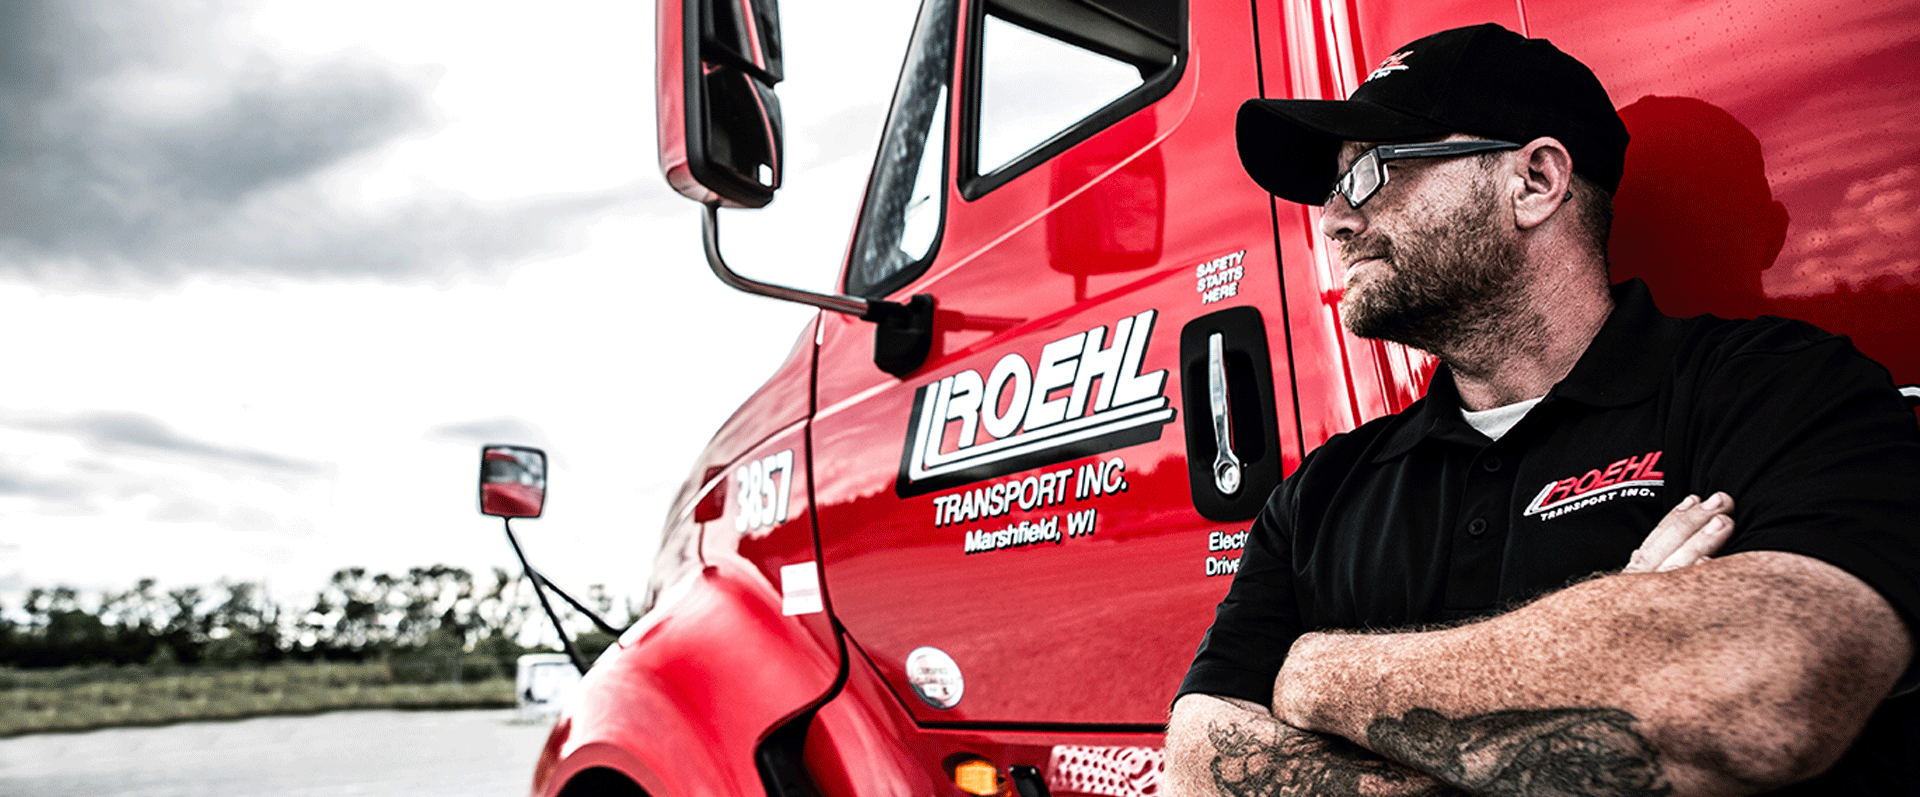 Roehl driver leaning against red truck